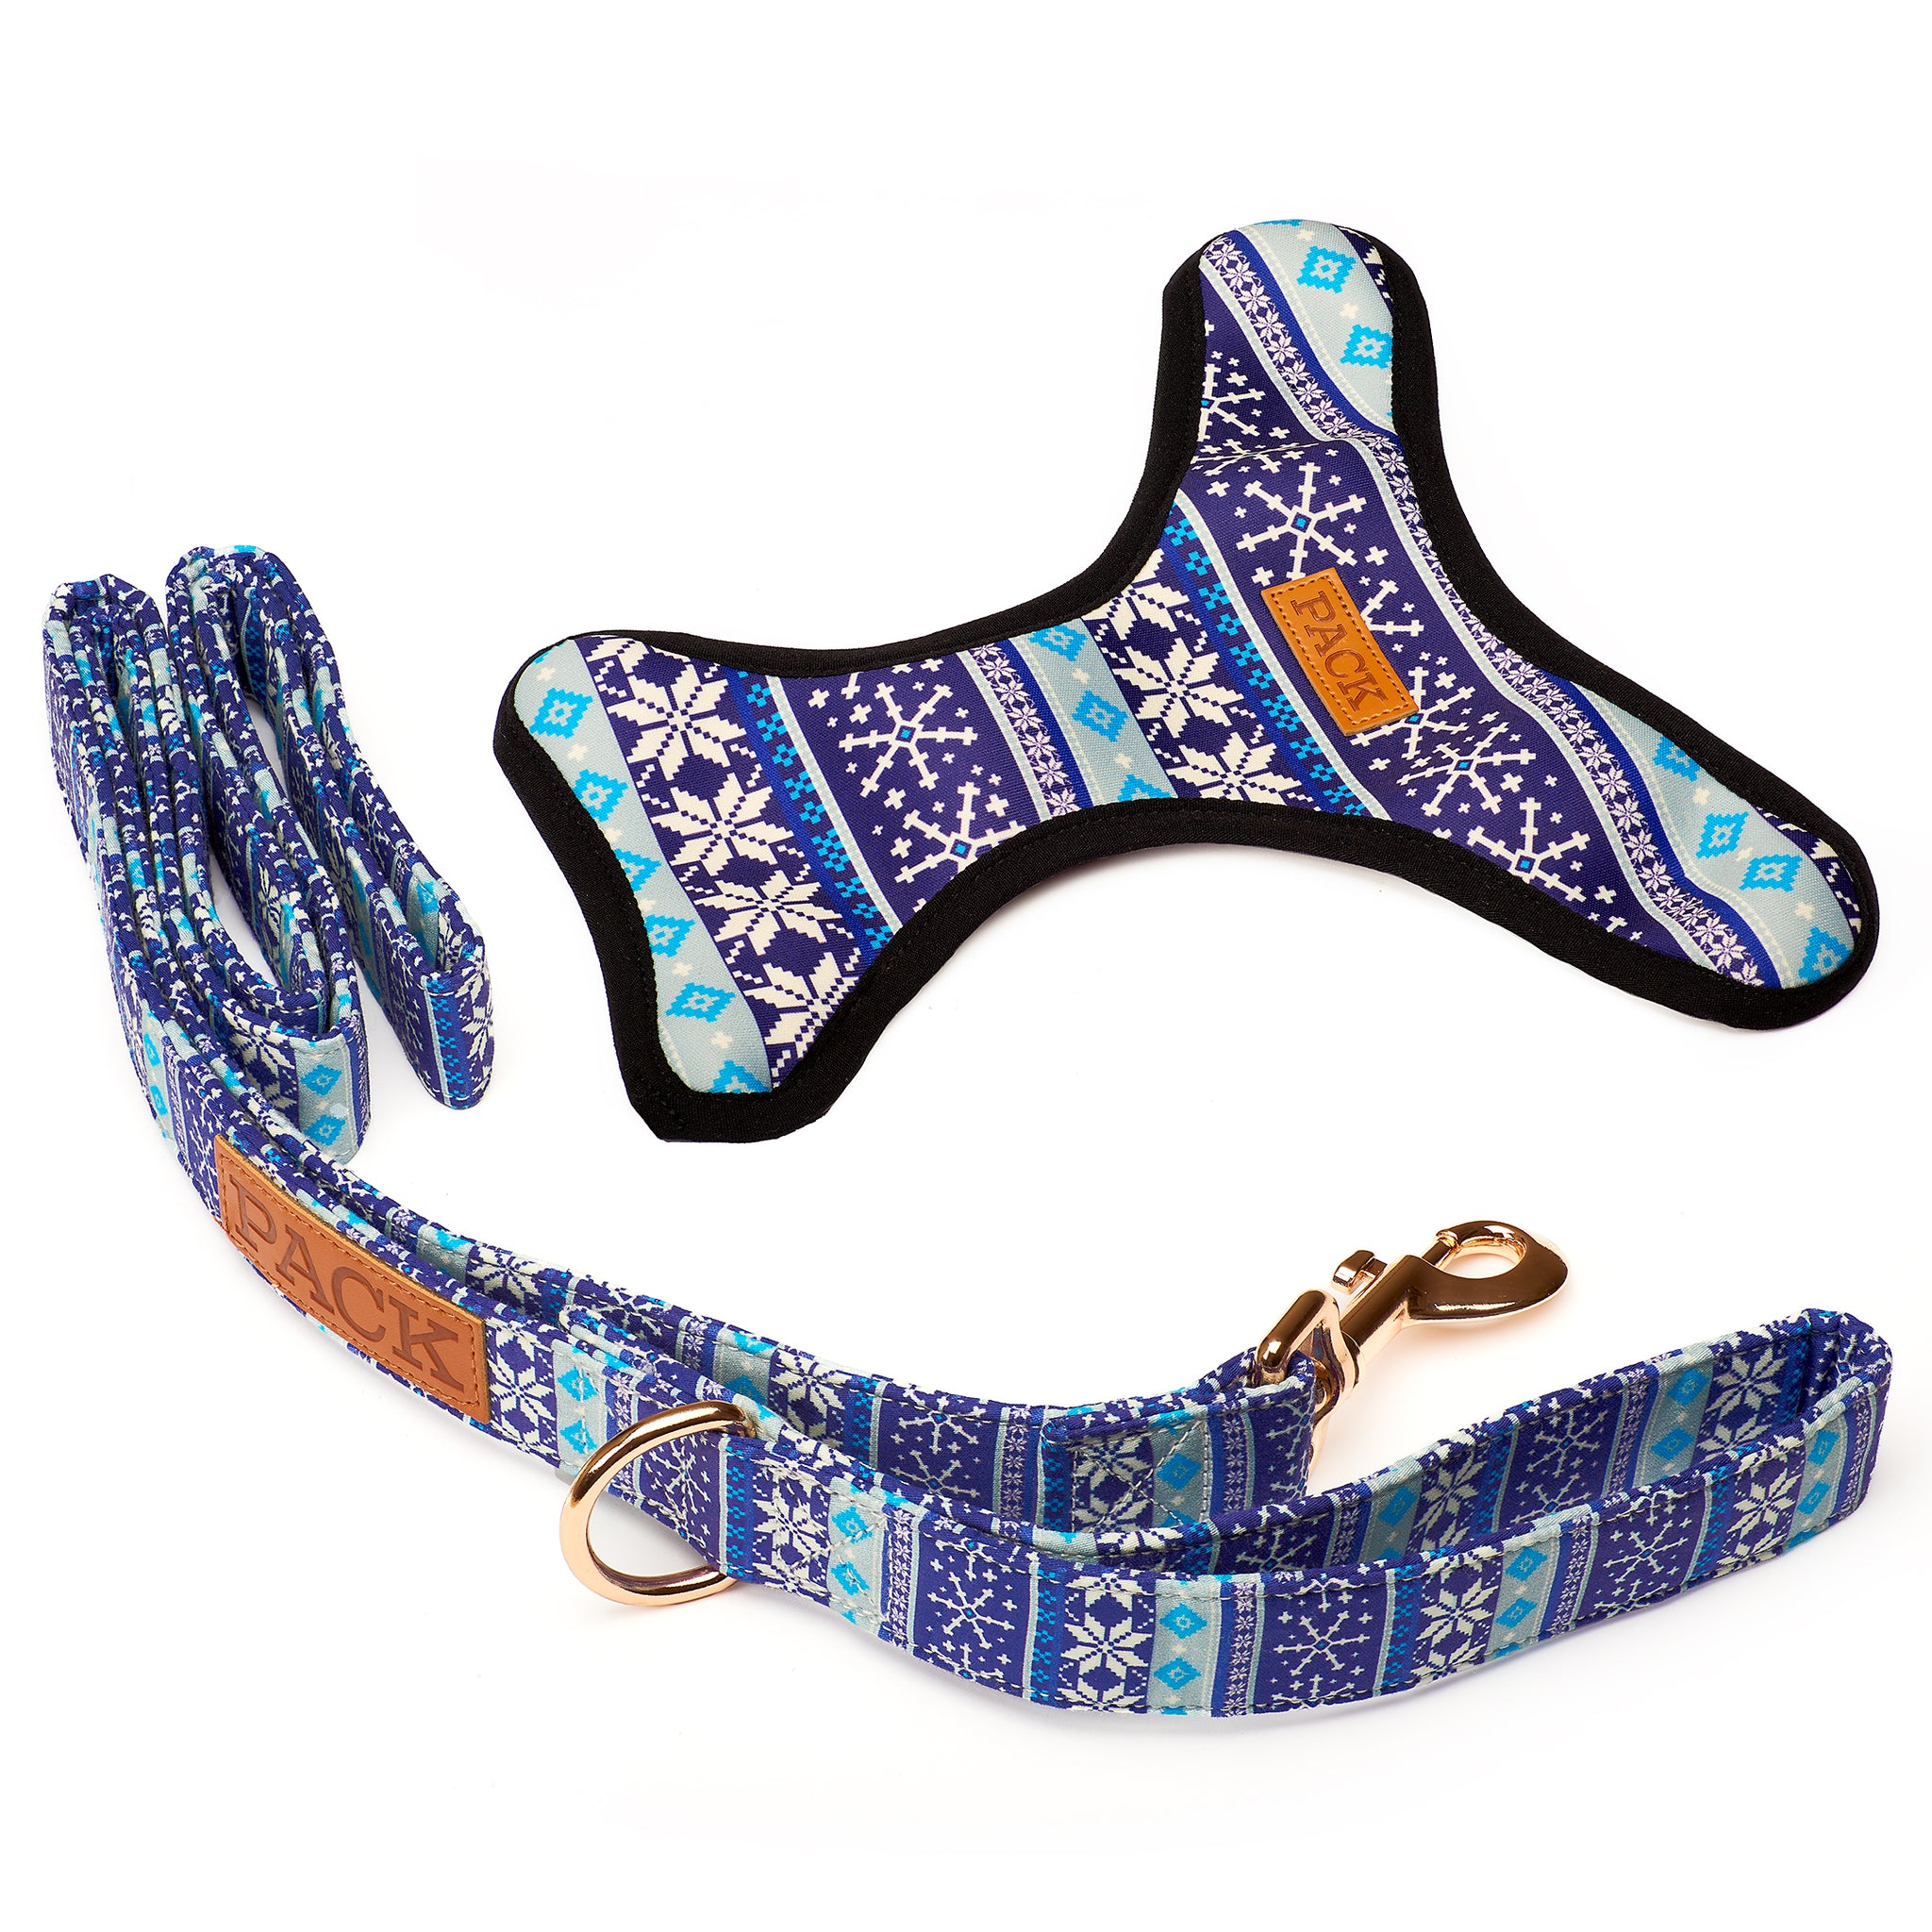 The Sweater Leash + Reversible Harness